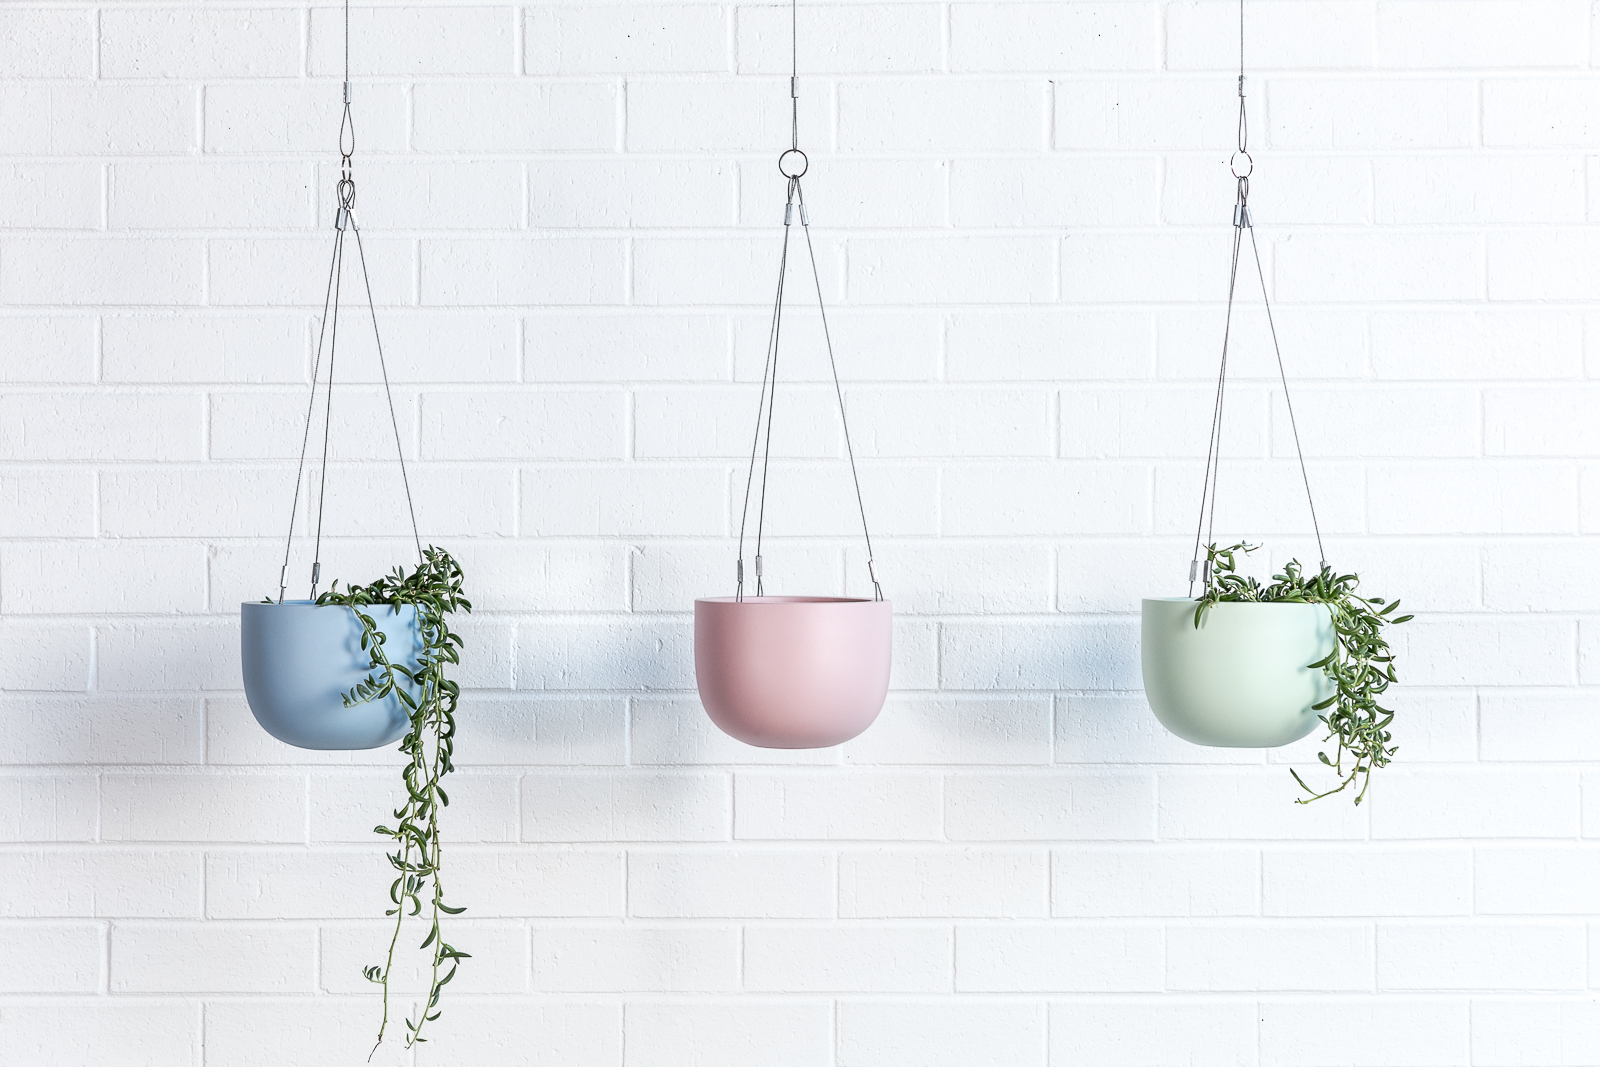 Maggie hanging planter bowls and foliage green pink blue